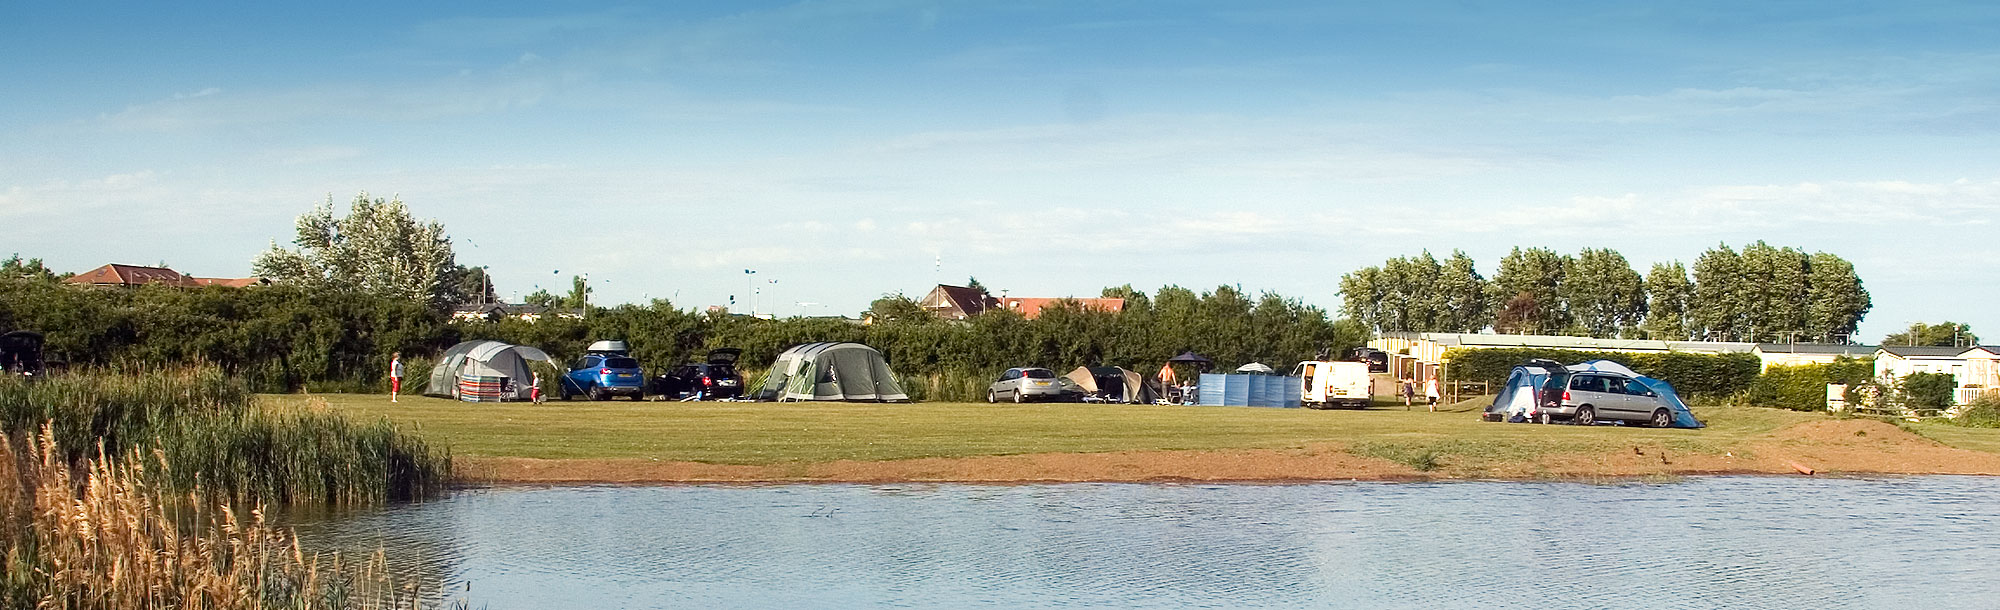 Essex campsite - touring pitches